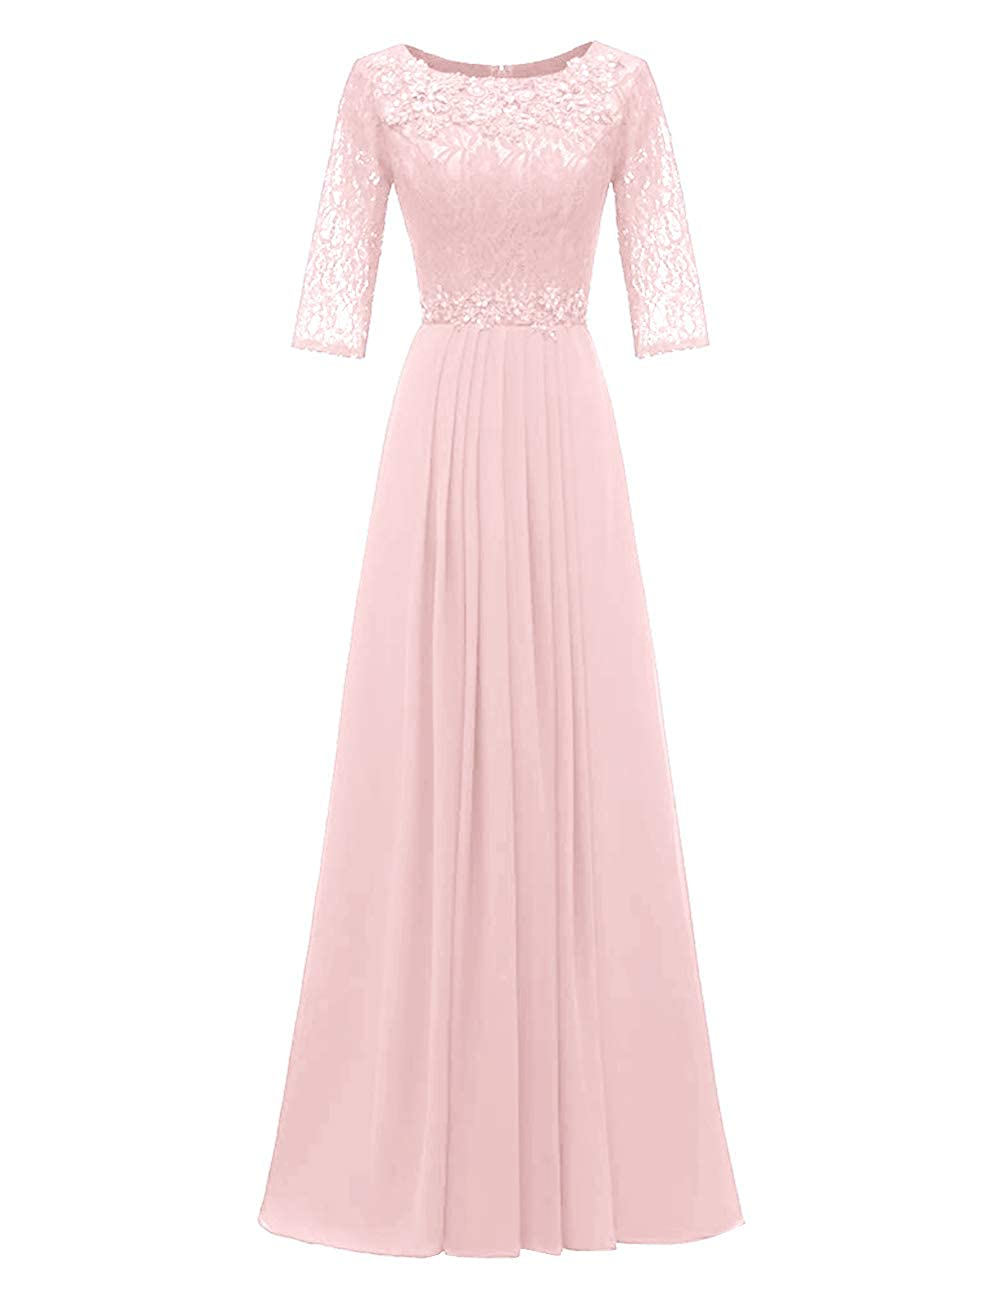 Light Pink H.S.D Evening Dresses Long Prom Dresses Lace Bridesmaid Dresses Evening Formal Gowns